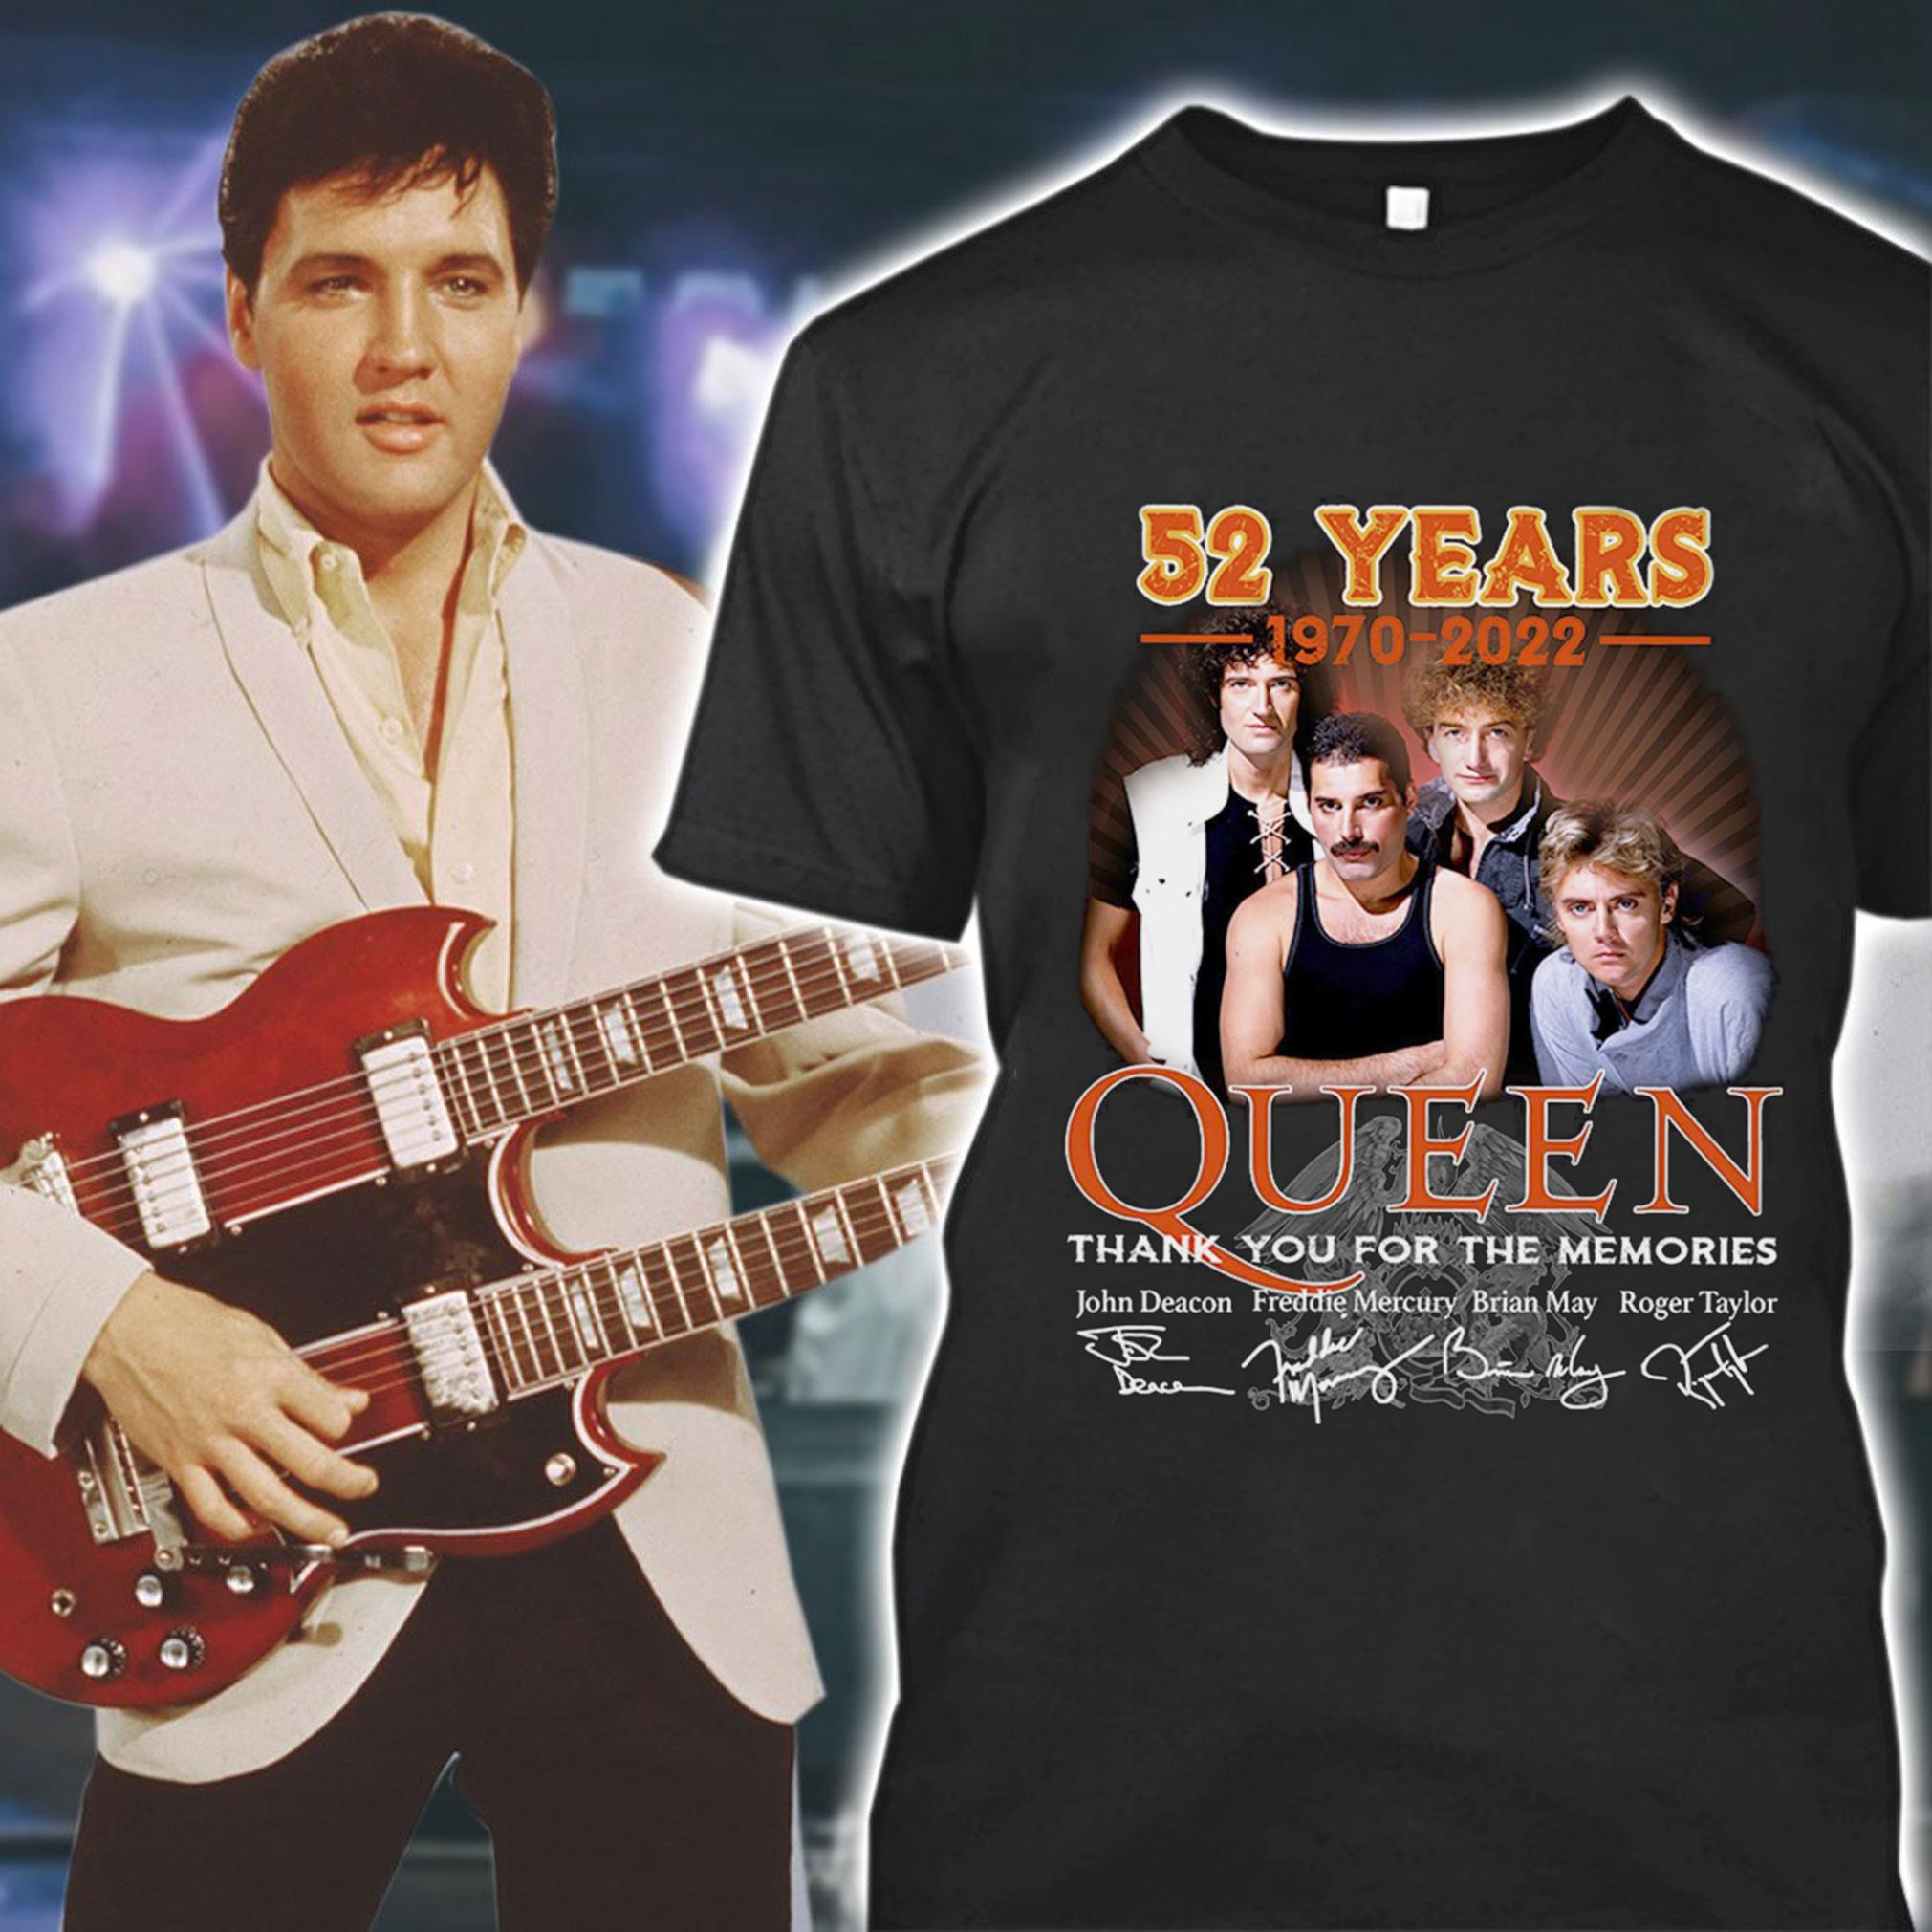 52%20years%201970 2022%20Queen%20thank%20you%20for%20the%20memories%20signatures%20shirt,%20John%20Deacon,%20Freddie%20Mercury,%20Brian%20May,%20Roger%20Taylor hoodieN9k141810T4POST - 52 years 1970-2022 Queen thank you for the memories signatures shirt, John Deacon, Freddie Mercury, Brian May, Roger Taylor